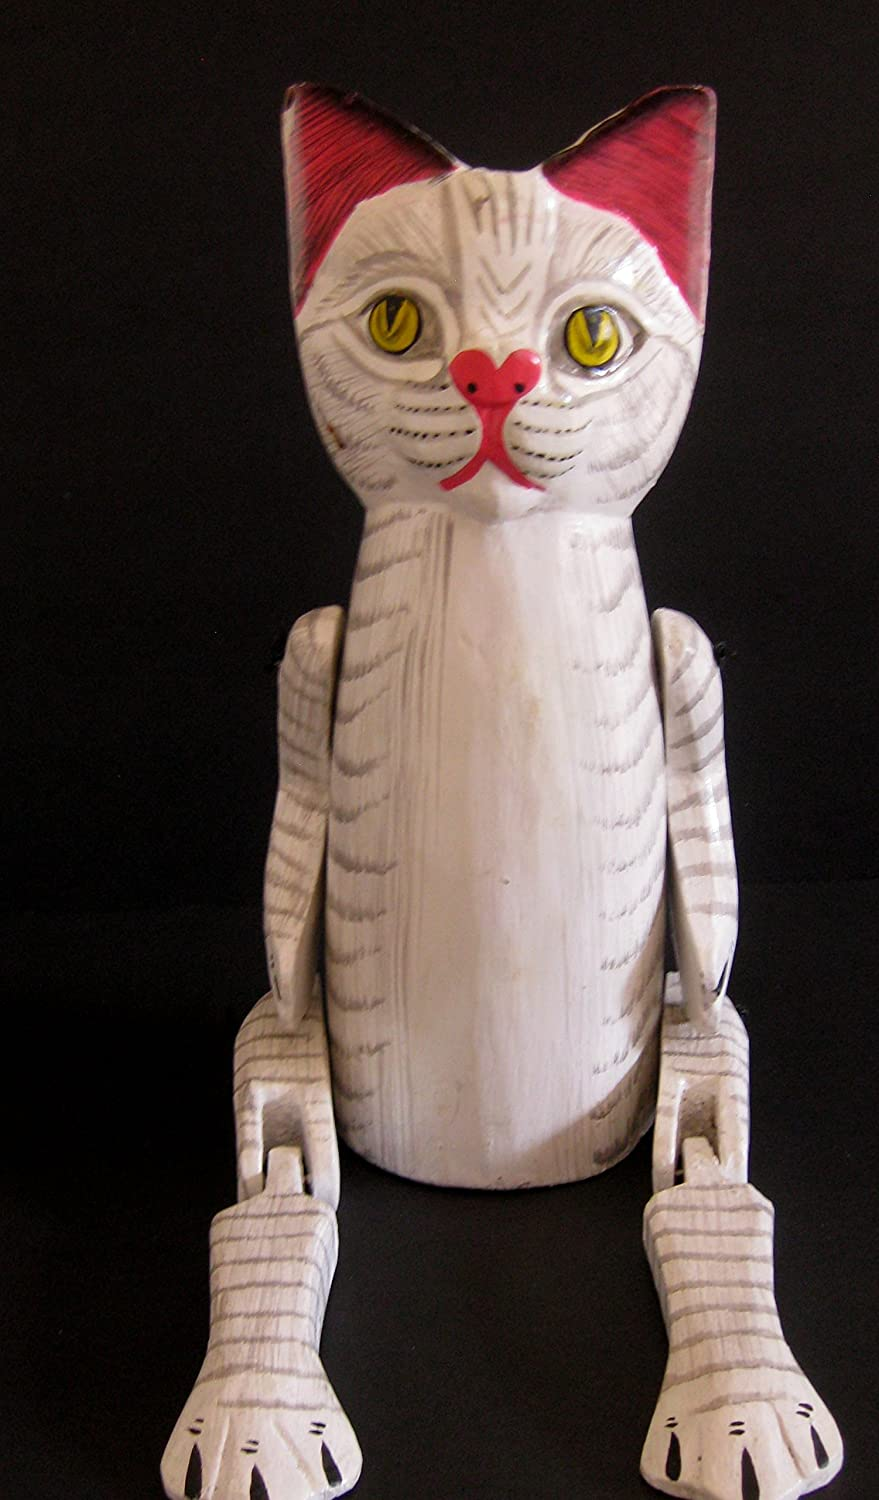 Oma Wooden Cat Statue Sitting Cat Figurine With Jointed Legs Cat Shelf Sitter Home Country Kitchen Decor Gift Large Size Home Kitchen